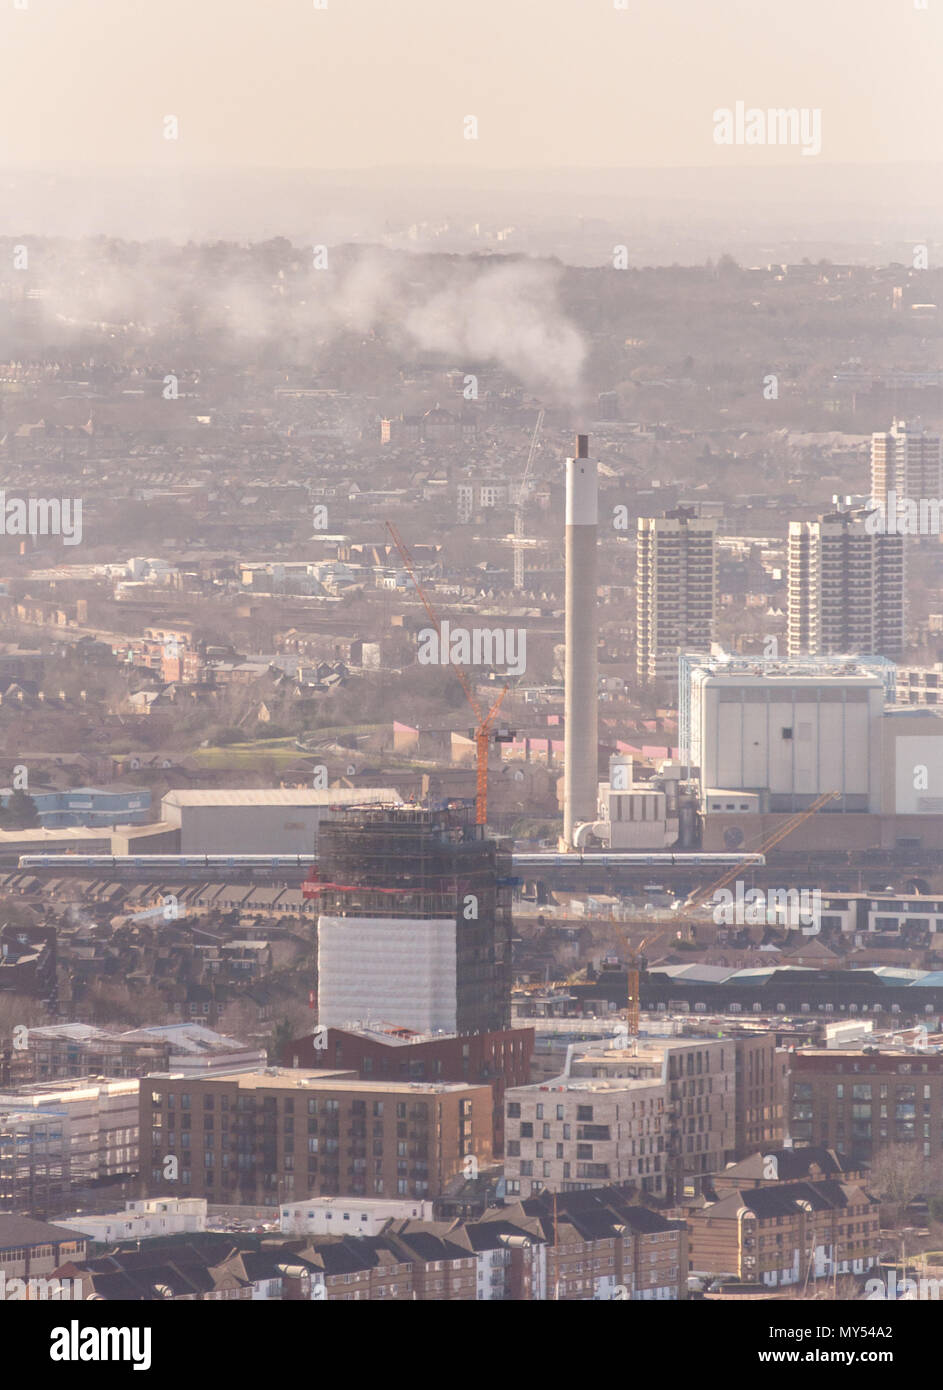 London, England, UK - February 27, 2015: A SouthEastern commuter train passes the chimney of the South East London Combined Heat and Power plant in Be - Stock Image